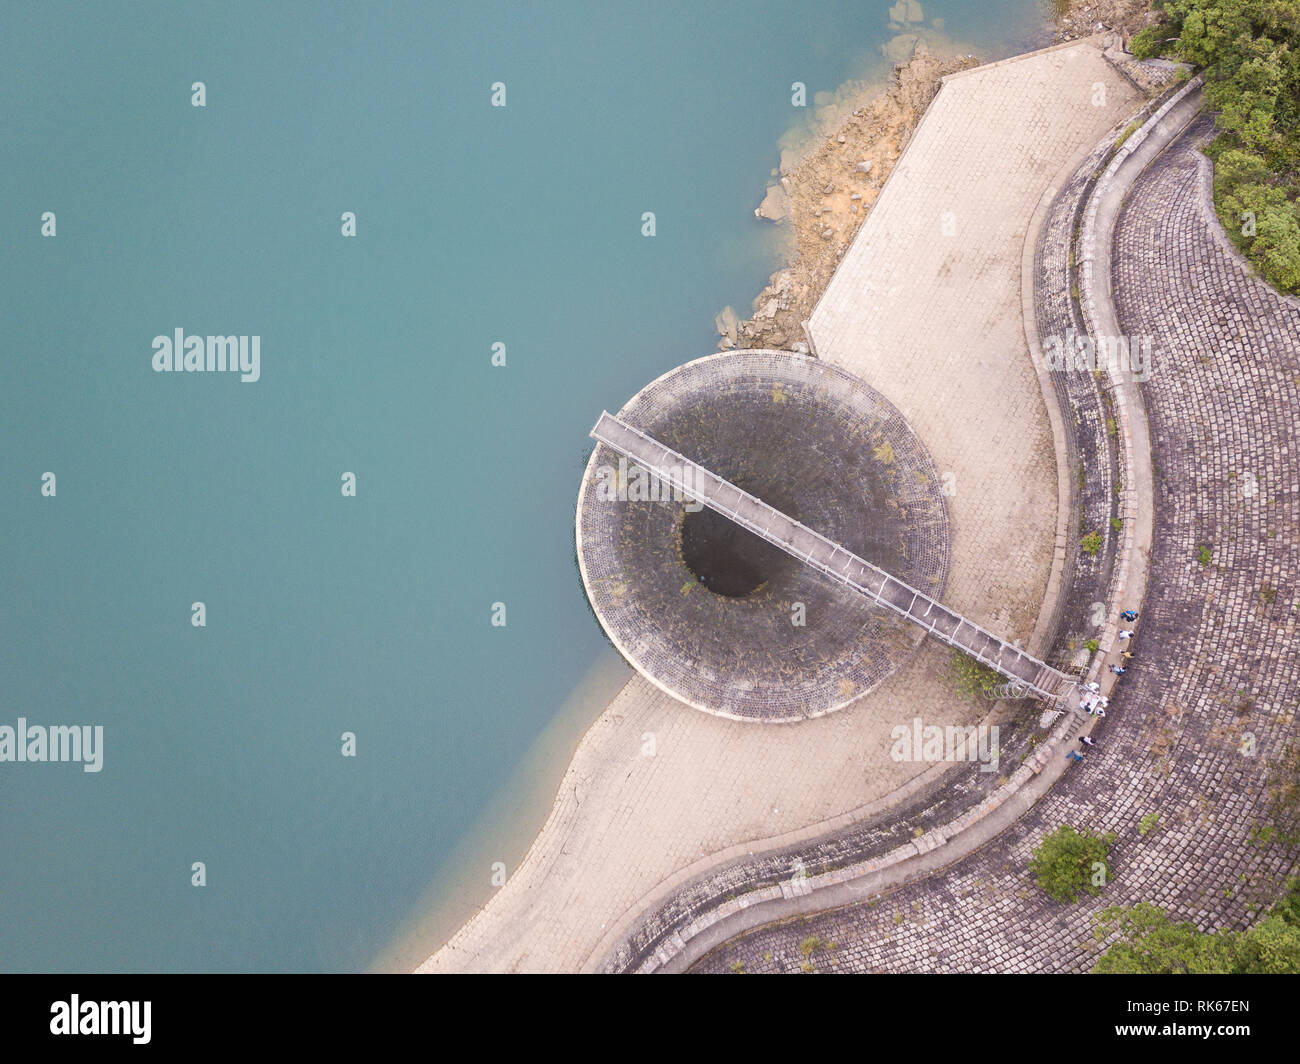 Shing Mun reservoir's overlow bellmouth seen by drone in Hong Kong - Stock Image